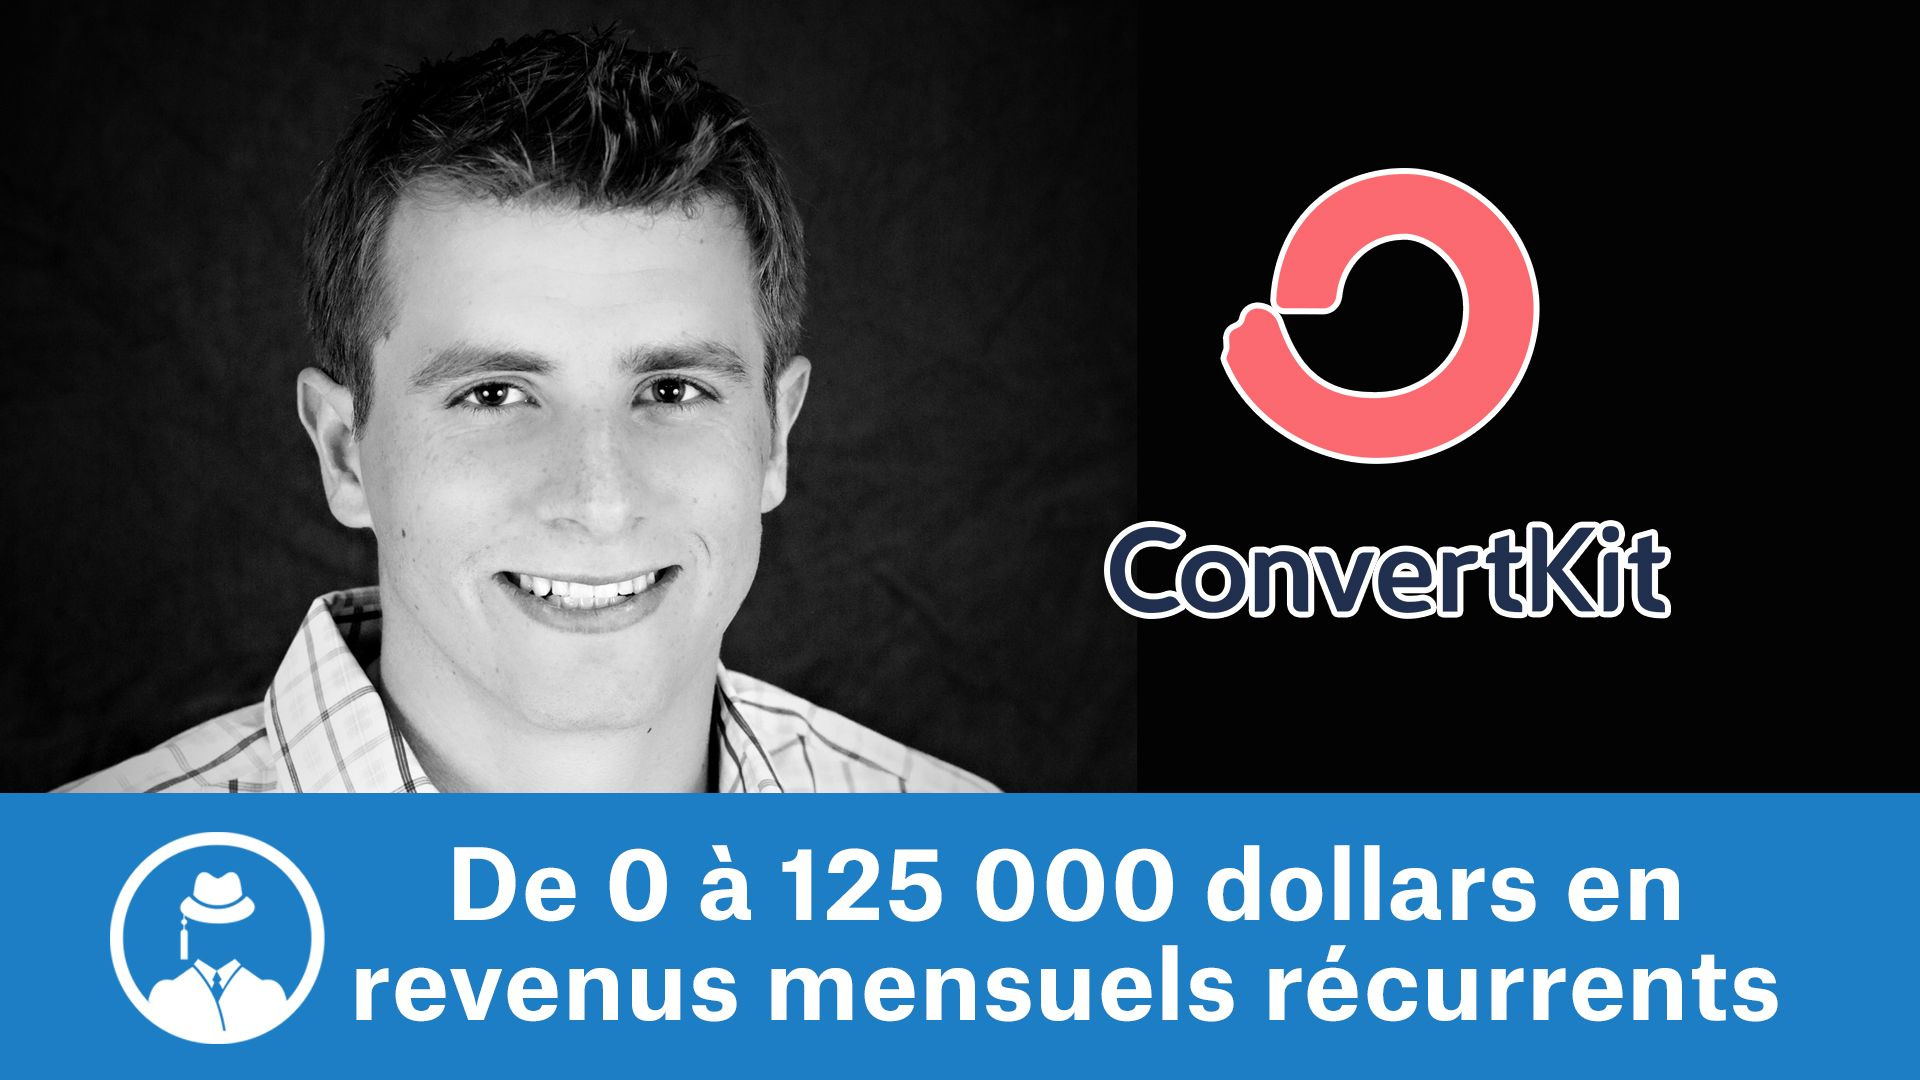 De 0 à 125 000 dollars en revenu mensuel récurrent (ConvertKit) #GrowthHacking #WebMarketing #FormationGrowthHacking #CentreDeFormationFrance #TunnelAARRR #AARRR #SocialMedia #CommunityManagement #SEO #ConvertKit #ProductMarketFit